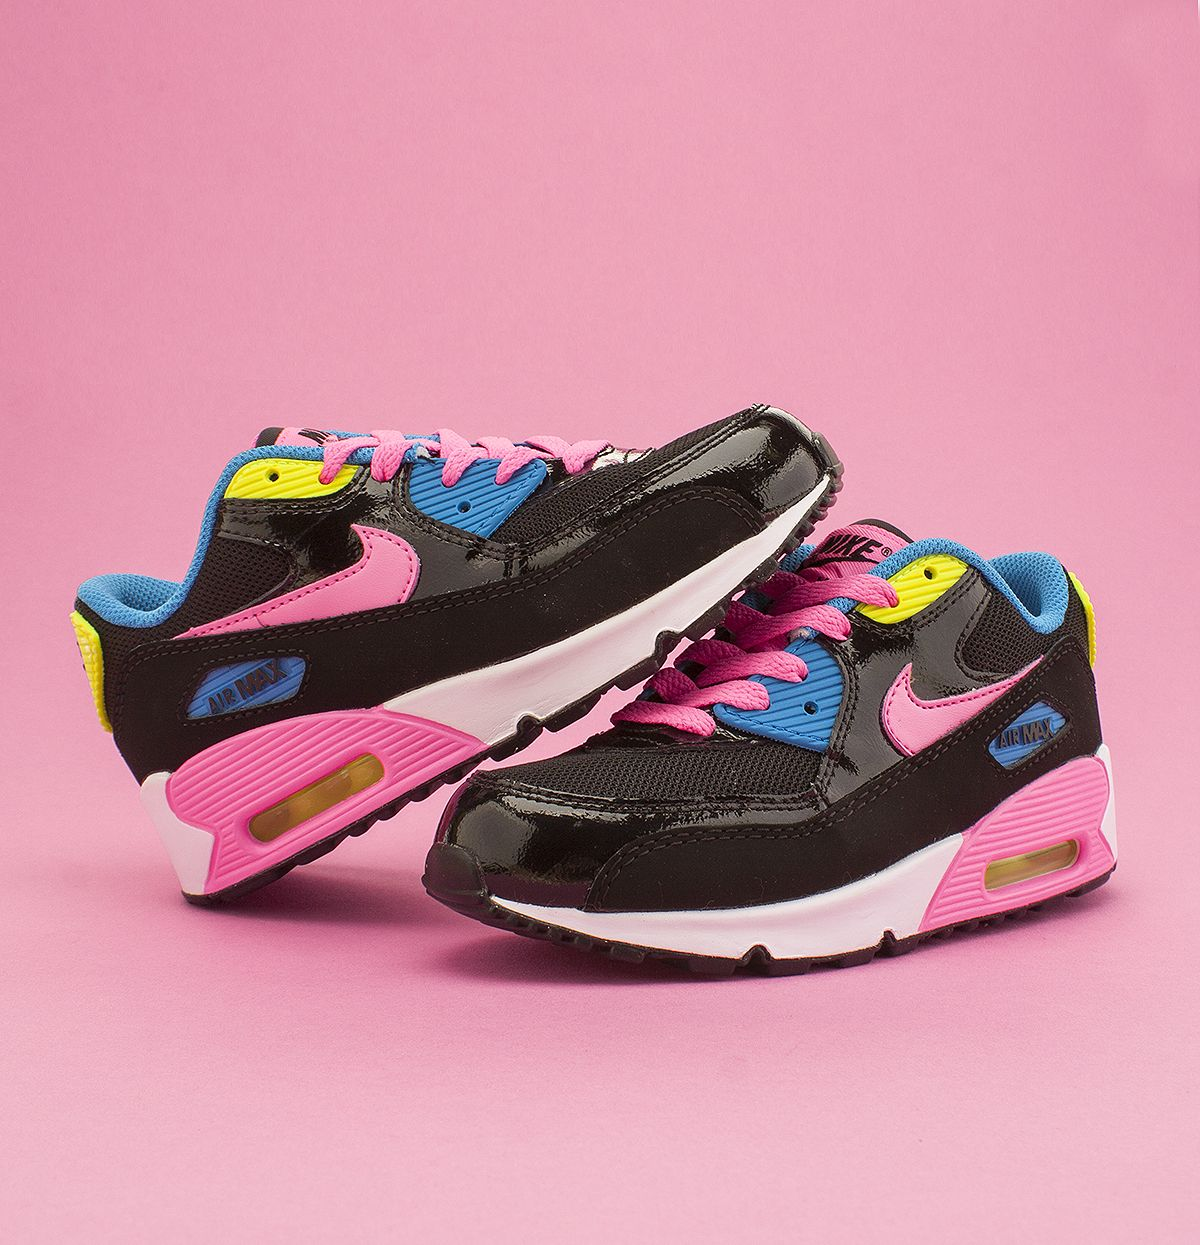 new concept 16577 5a3e1 boots nike air max 90 Since 1985, the sneakers with Michael Jordan s ...